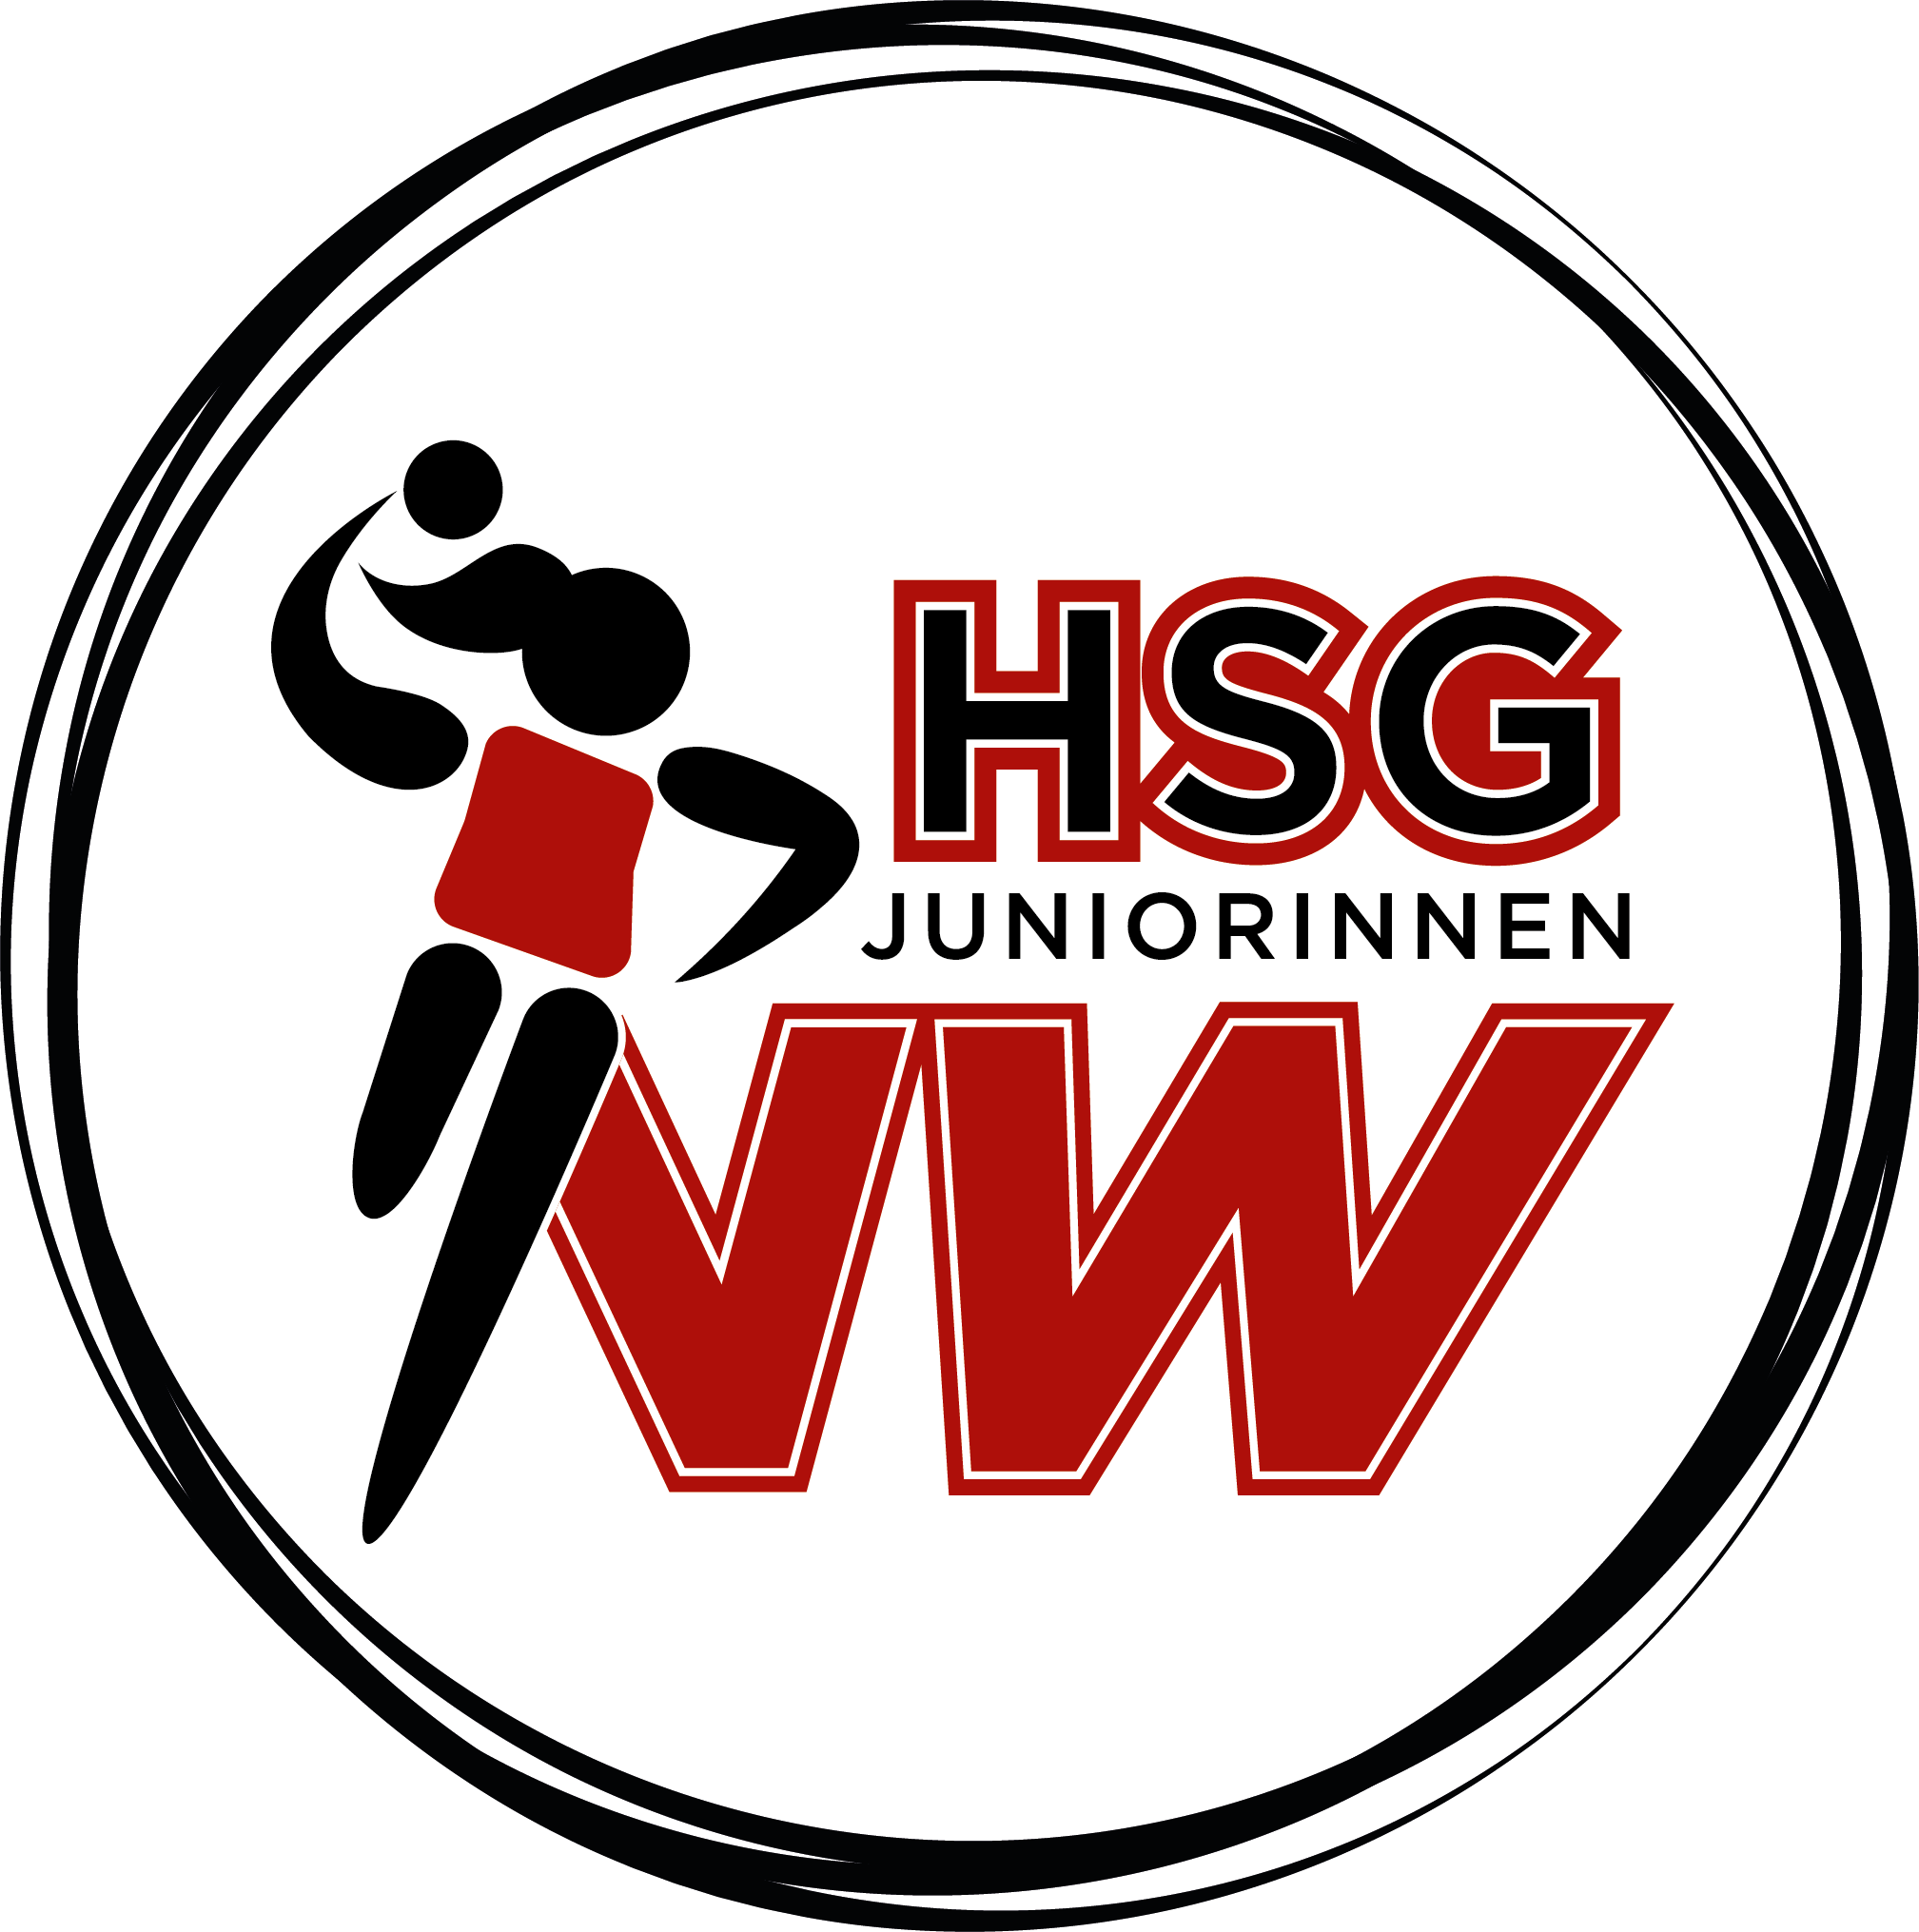 HSG_Juniorinnen_RZ_web